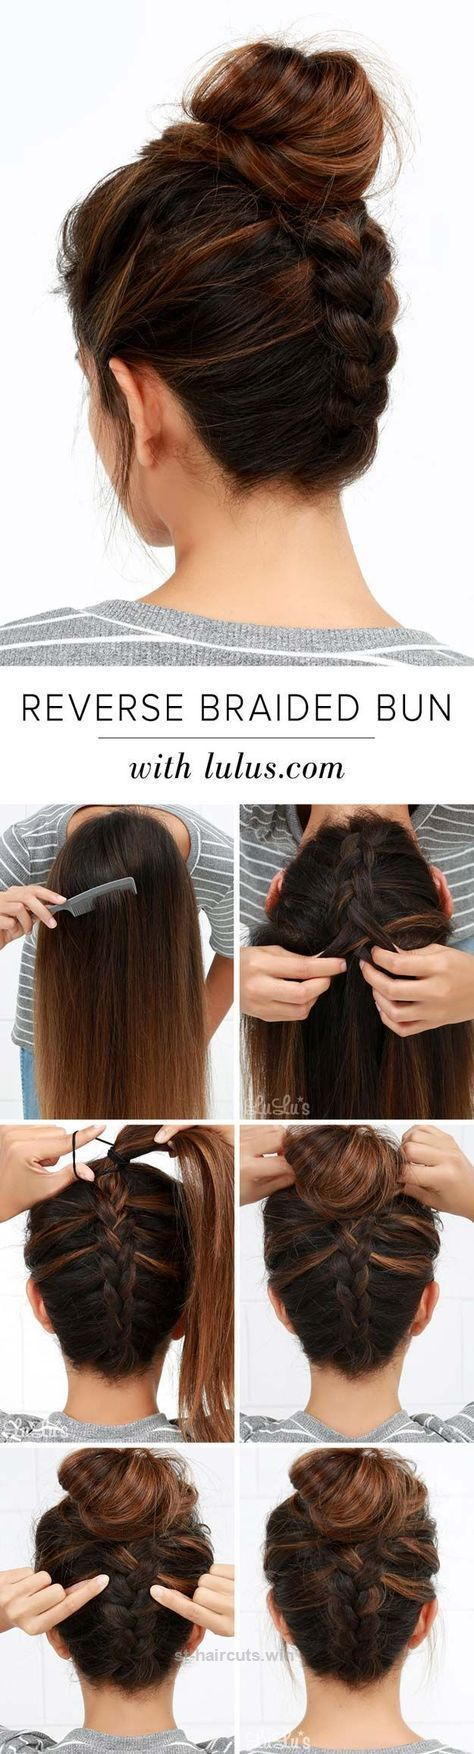 Splendid Cool and Easy DIY Hairstyles – Reversed Braided Bun – Quick and Easy Ideas for Back to School Styles for Medium, Short and Long Hair – Fun Tips and Best Step by Step  ..